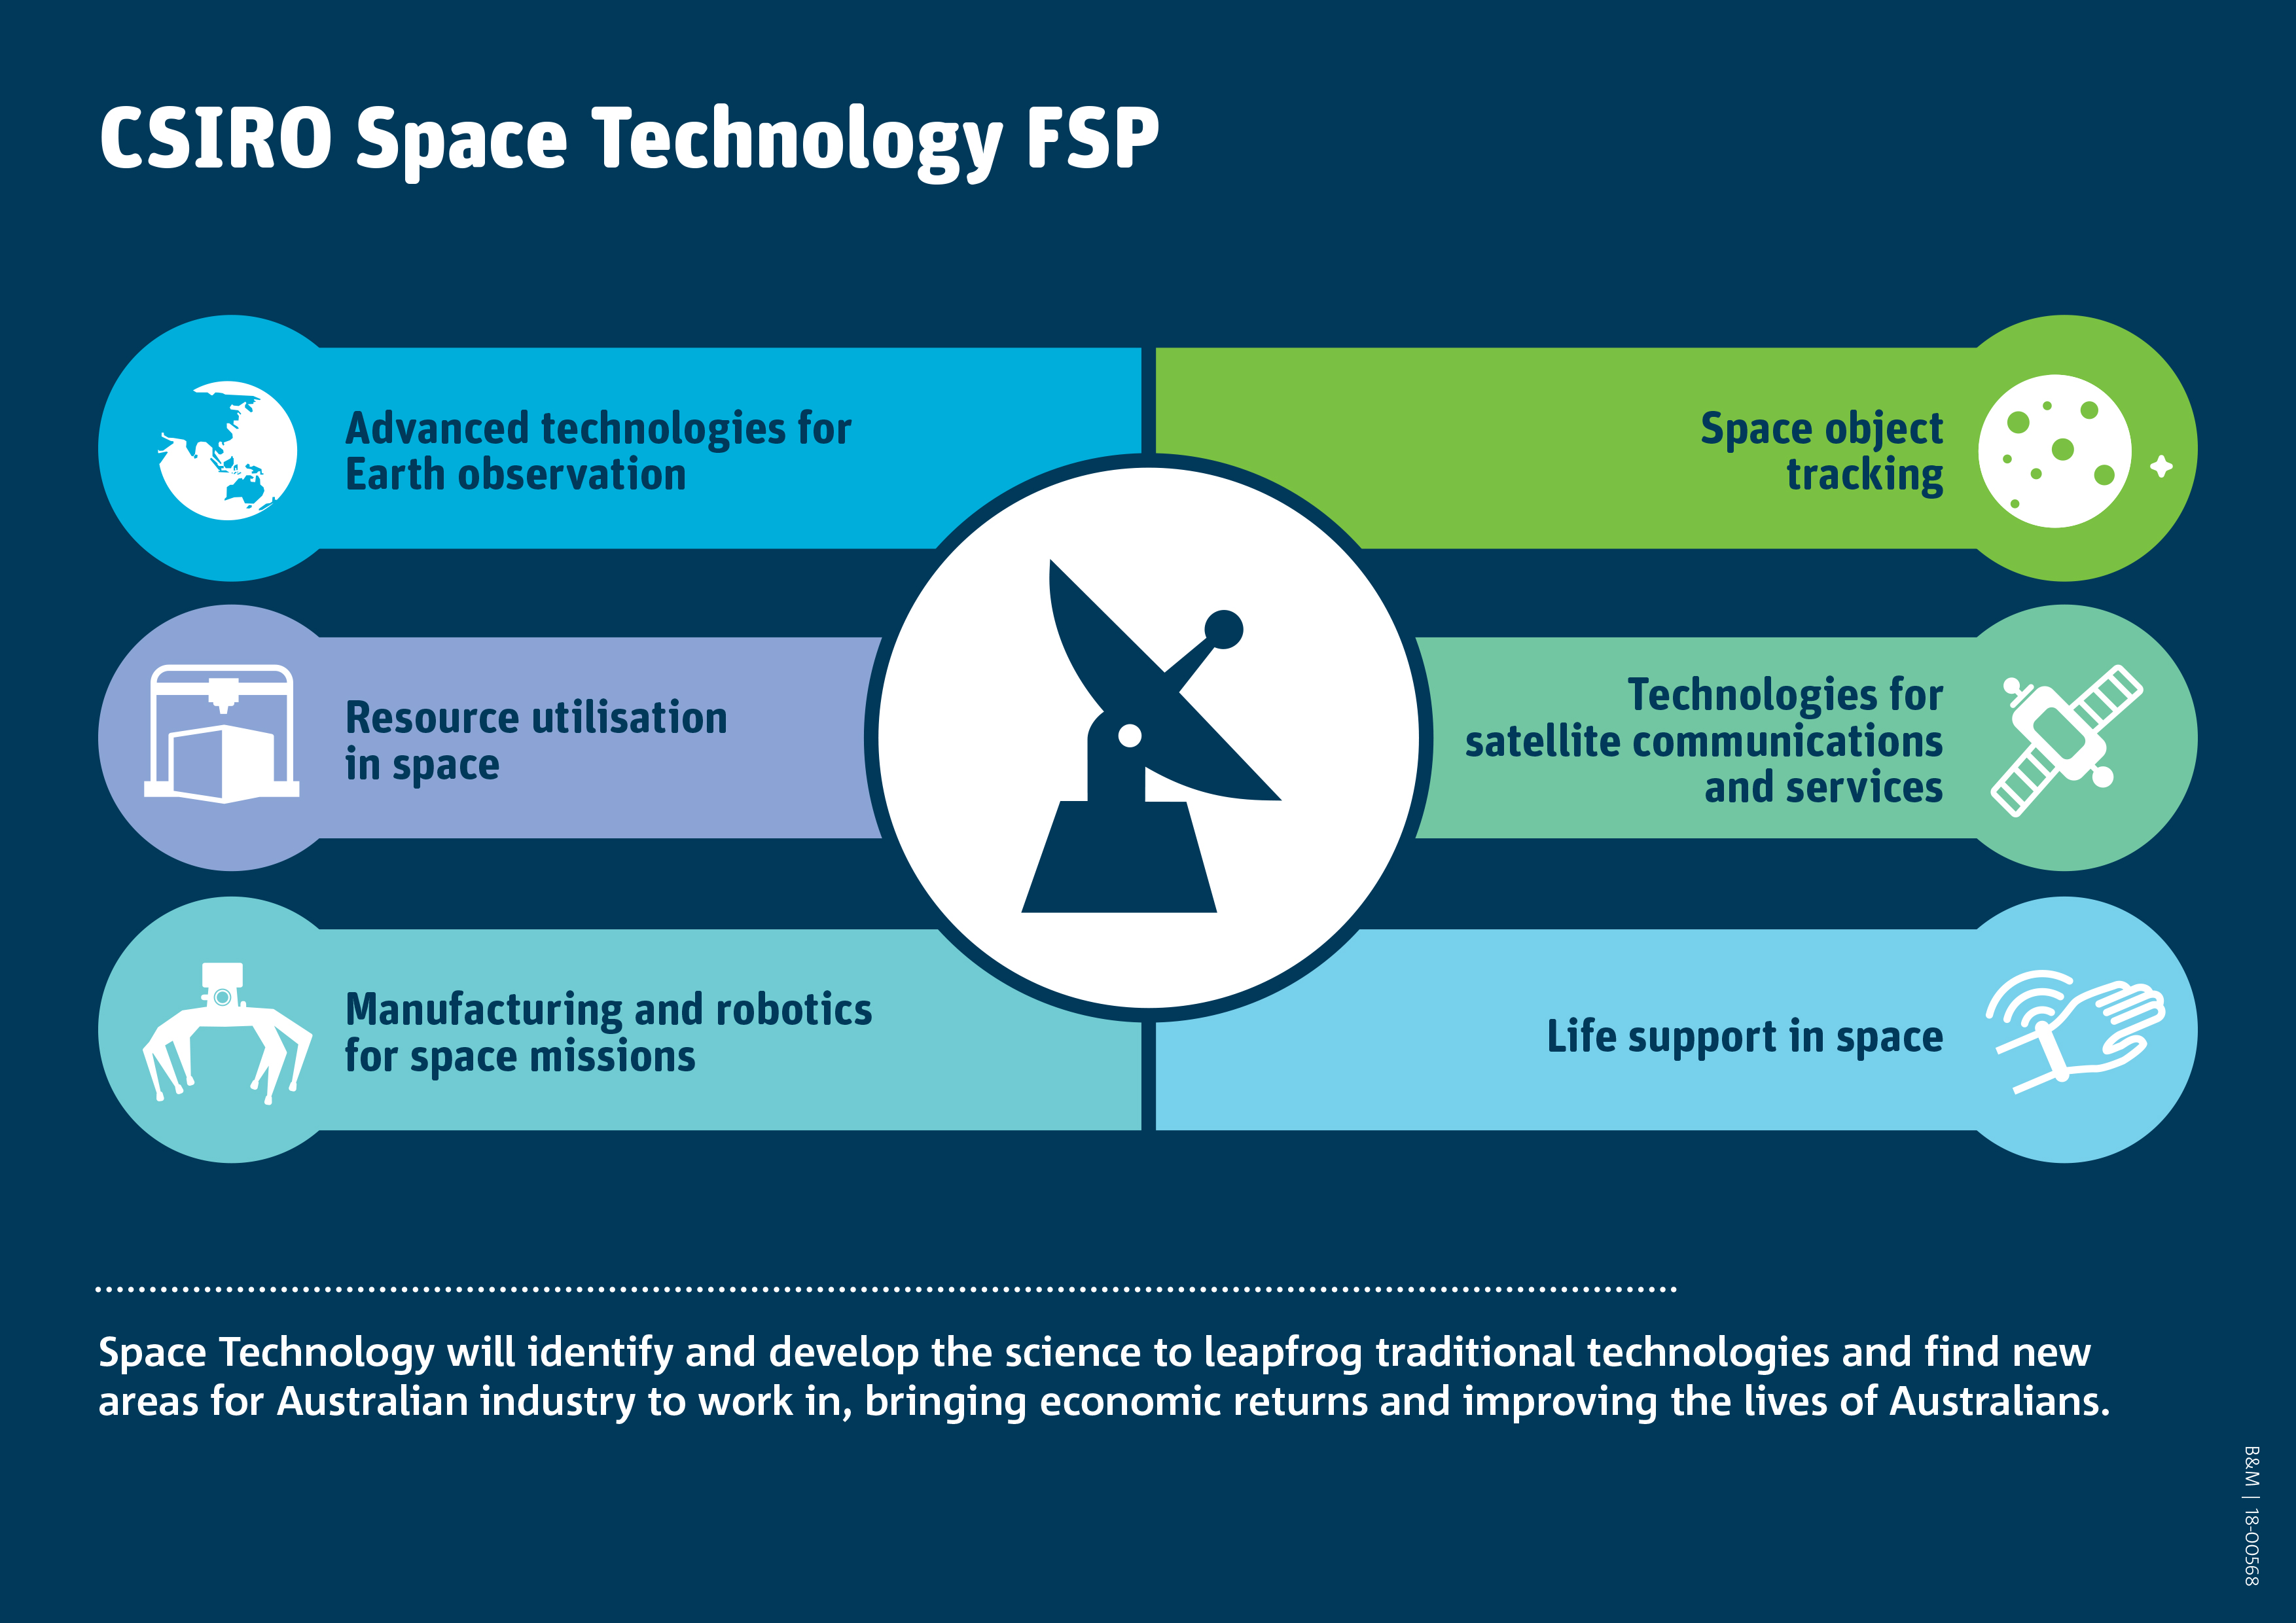 Infographic showing areas of research for the CSIRO space technology future science platform (FSP).